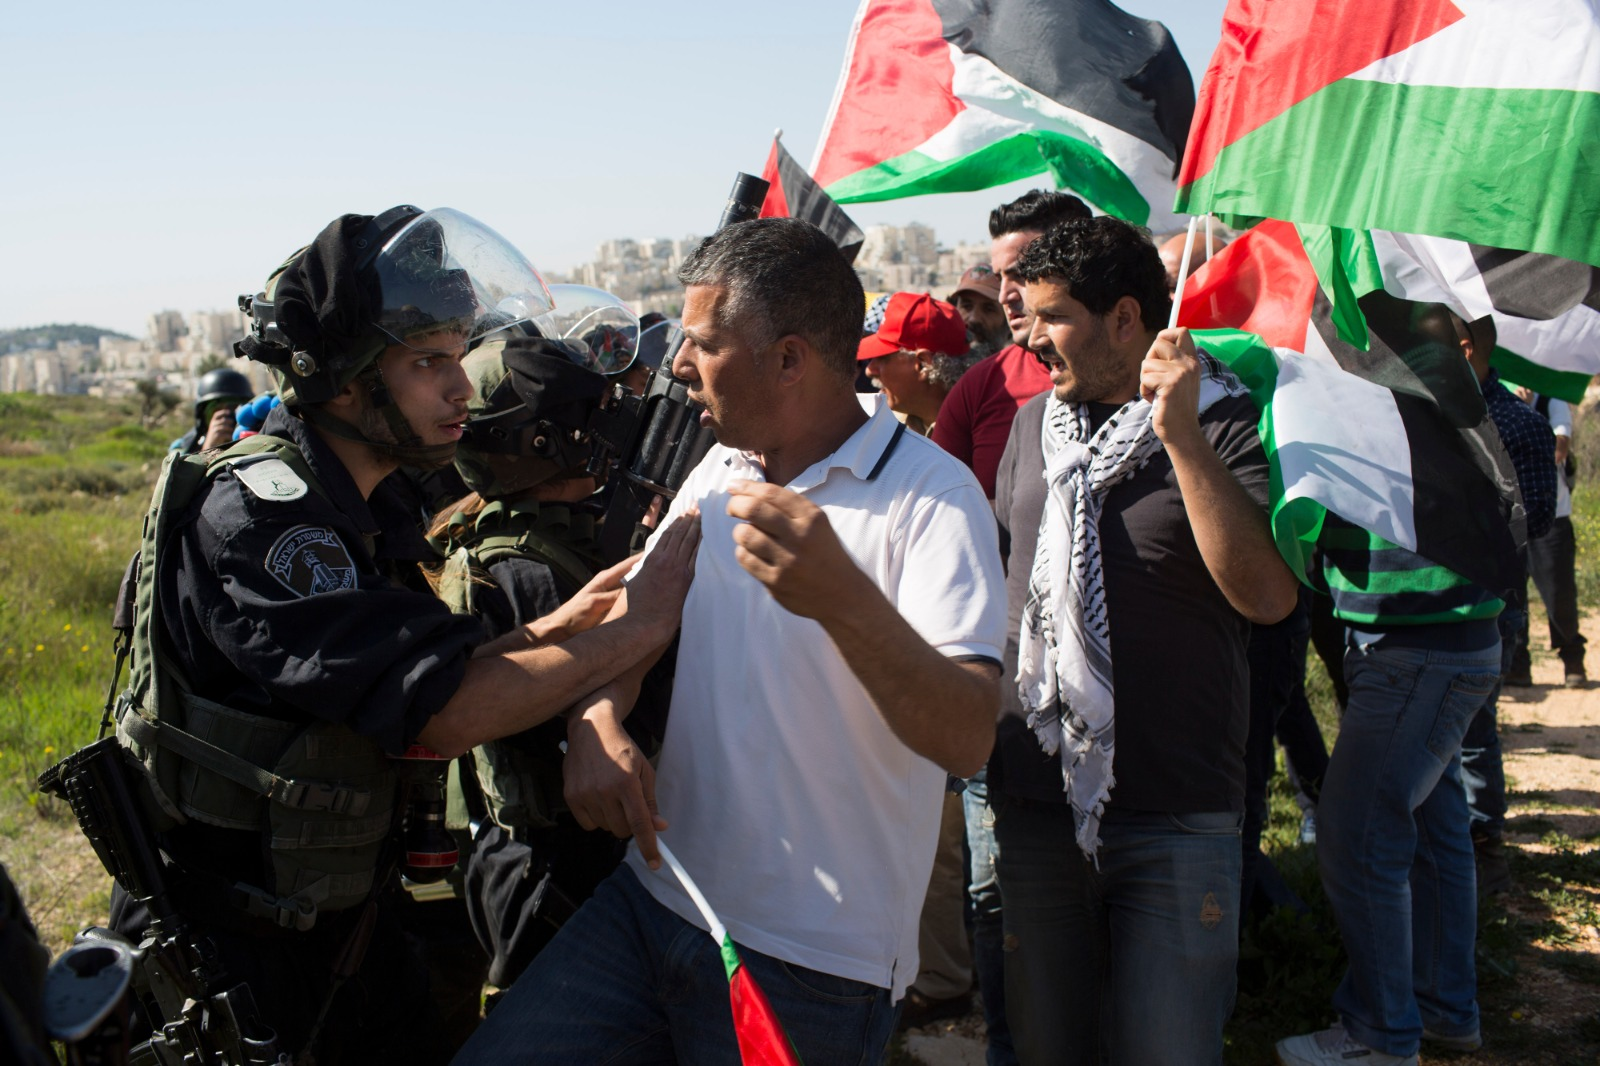 Muhammad Khatib during a weekly demonstration in the West Bank village of Bil'in in 2015. (Oren Ziv)